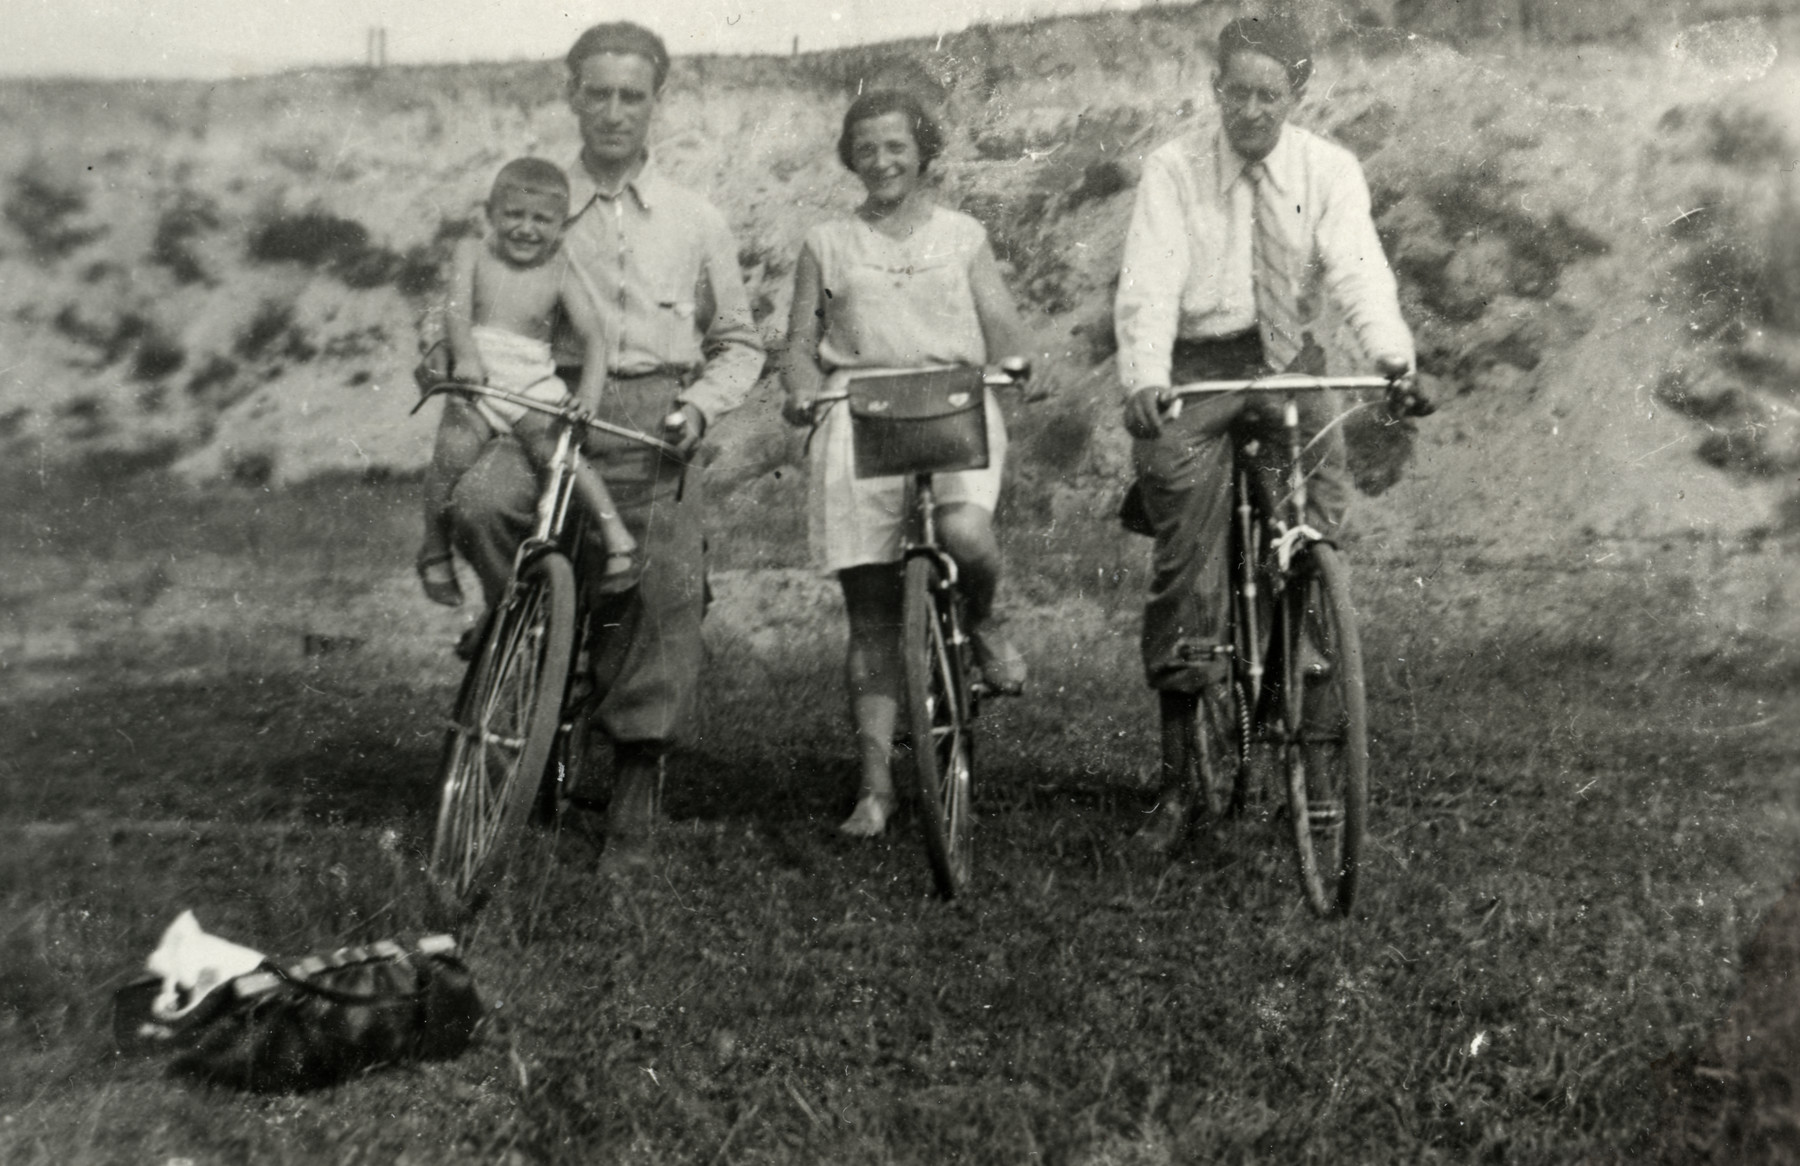 Michel Werber rides on the handlebars of his father's bicycle accompanied by his aunt and uncle.    From left to right are Michel and Abush Werber, Paulina and Dode Troki.